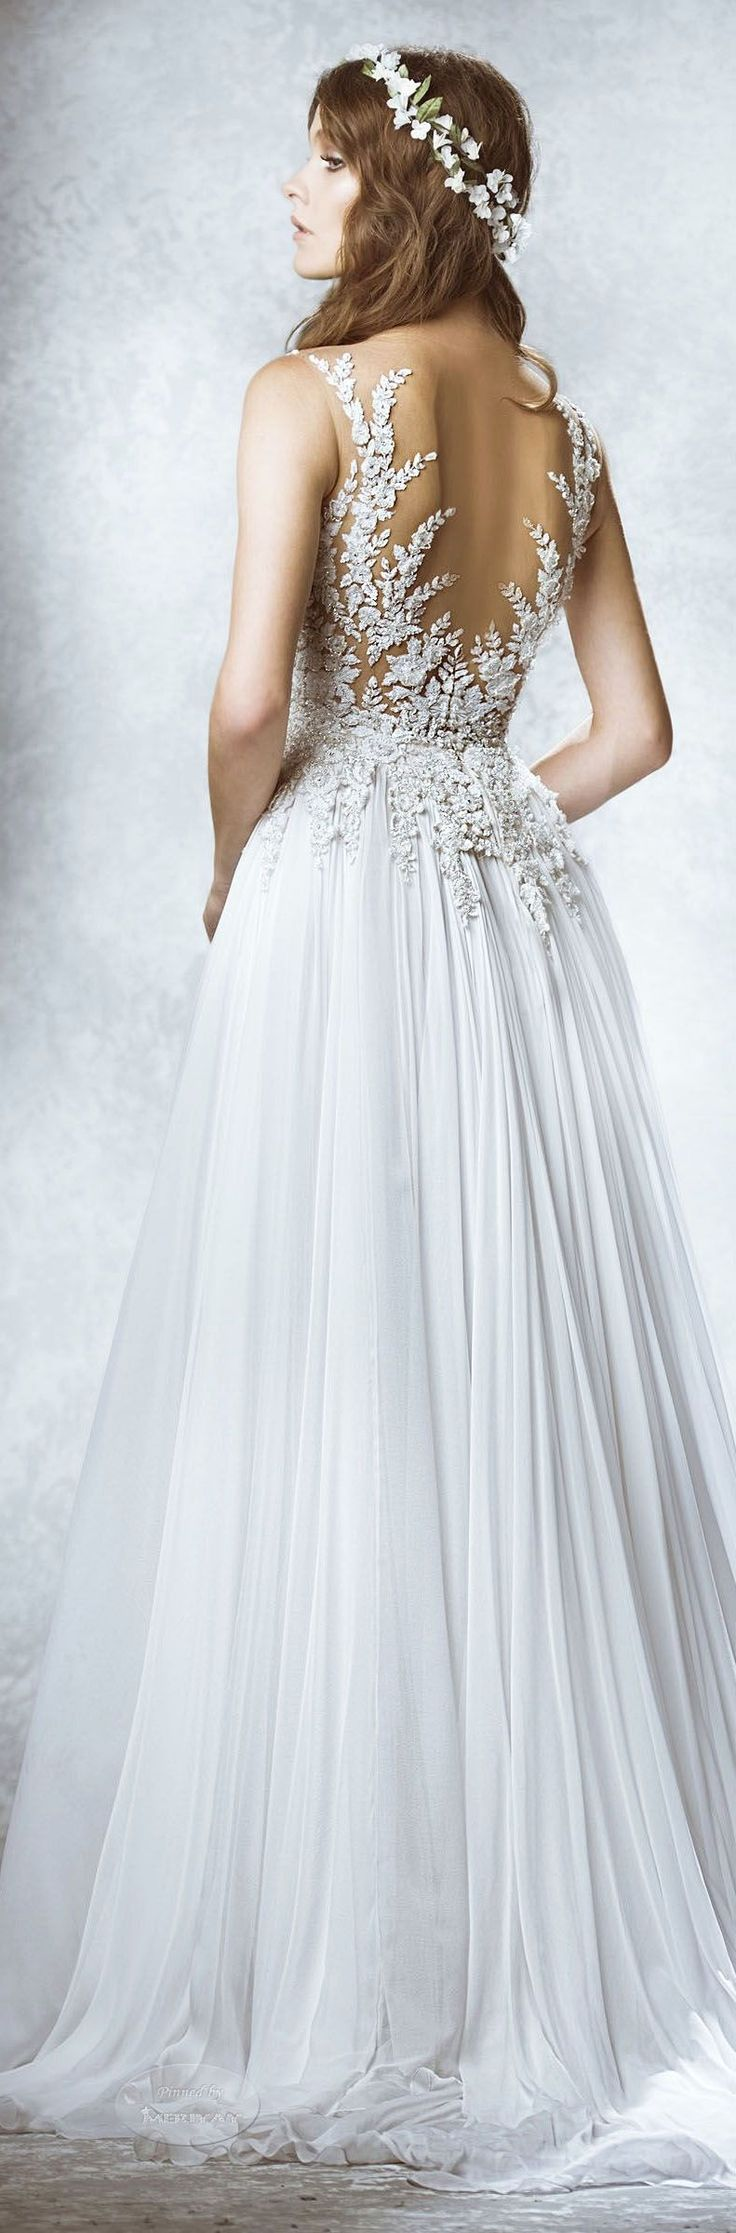 45 best Kingdom hearts wedding images on Pinterest | Gown ...